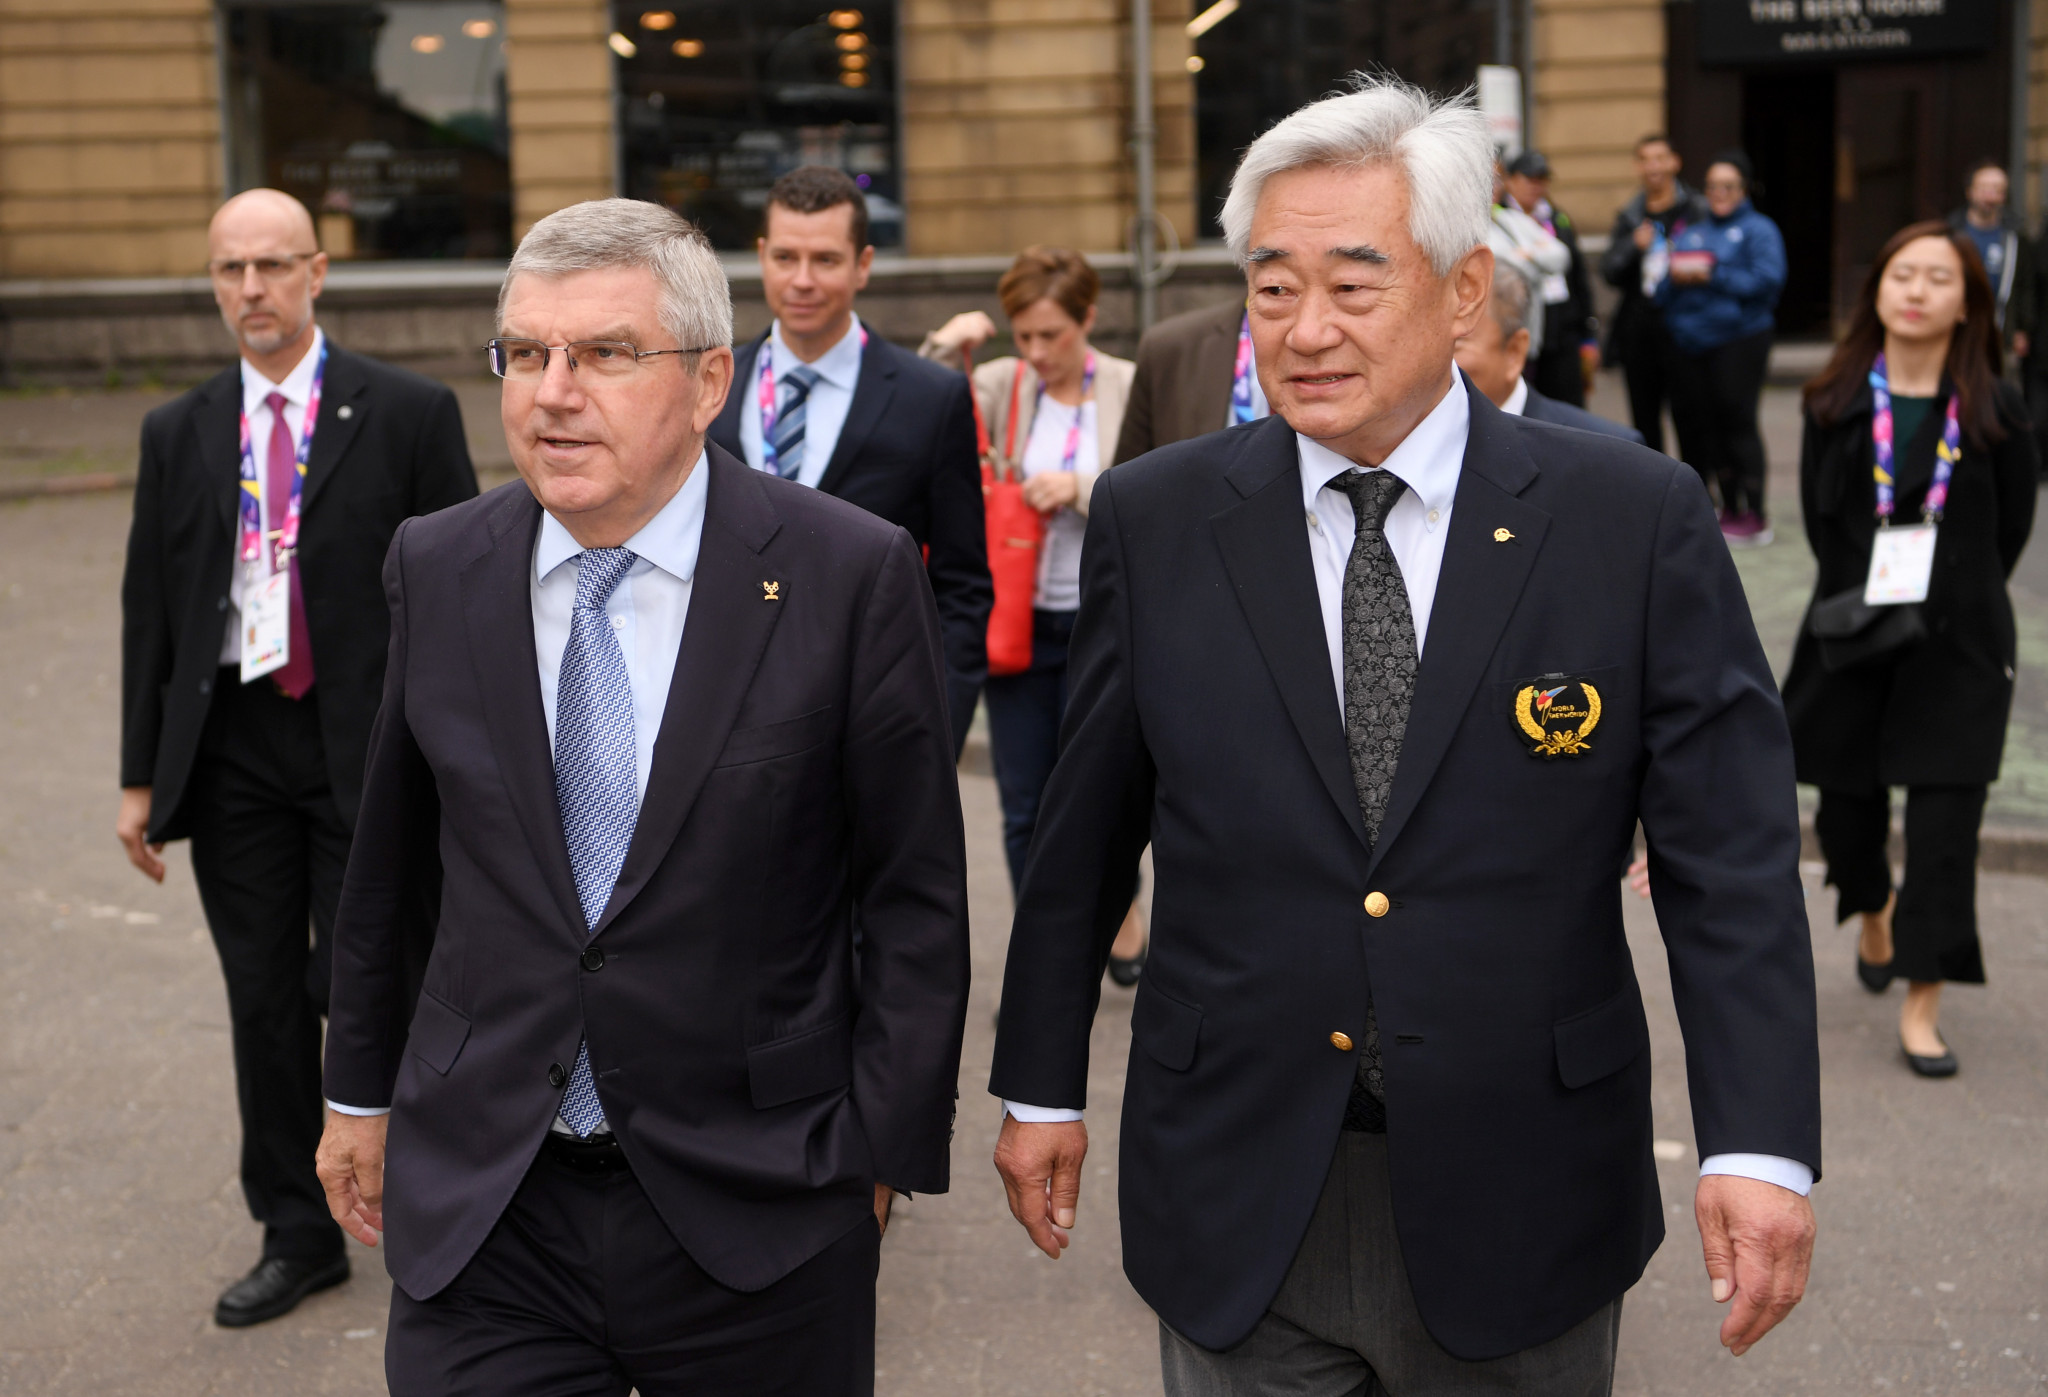 Chungwon Choue, right, seen with International Olympic Committee President Thomas Bach, has led World Taekwondo since 2004 ©Getty Images